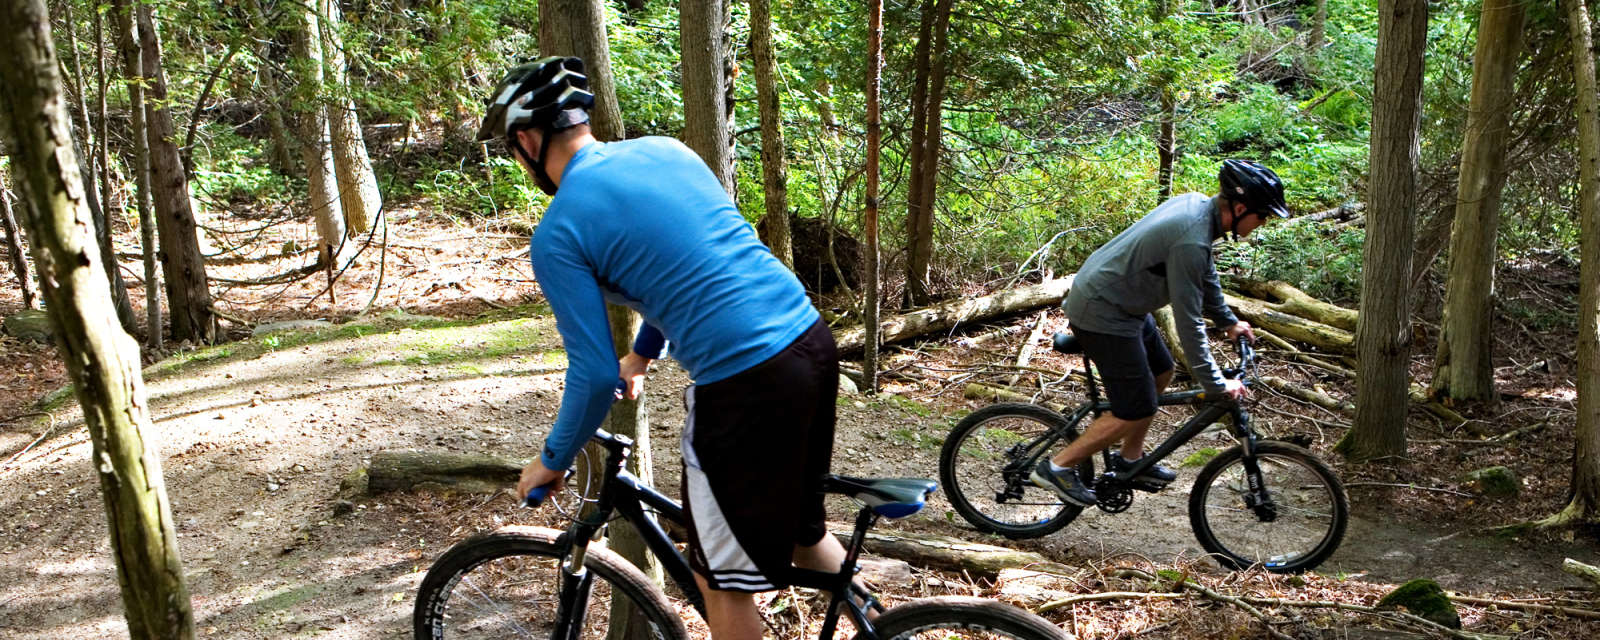 Mountain Biking in Walkerton